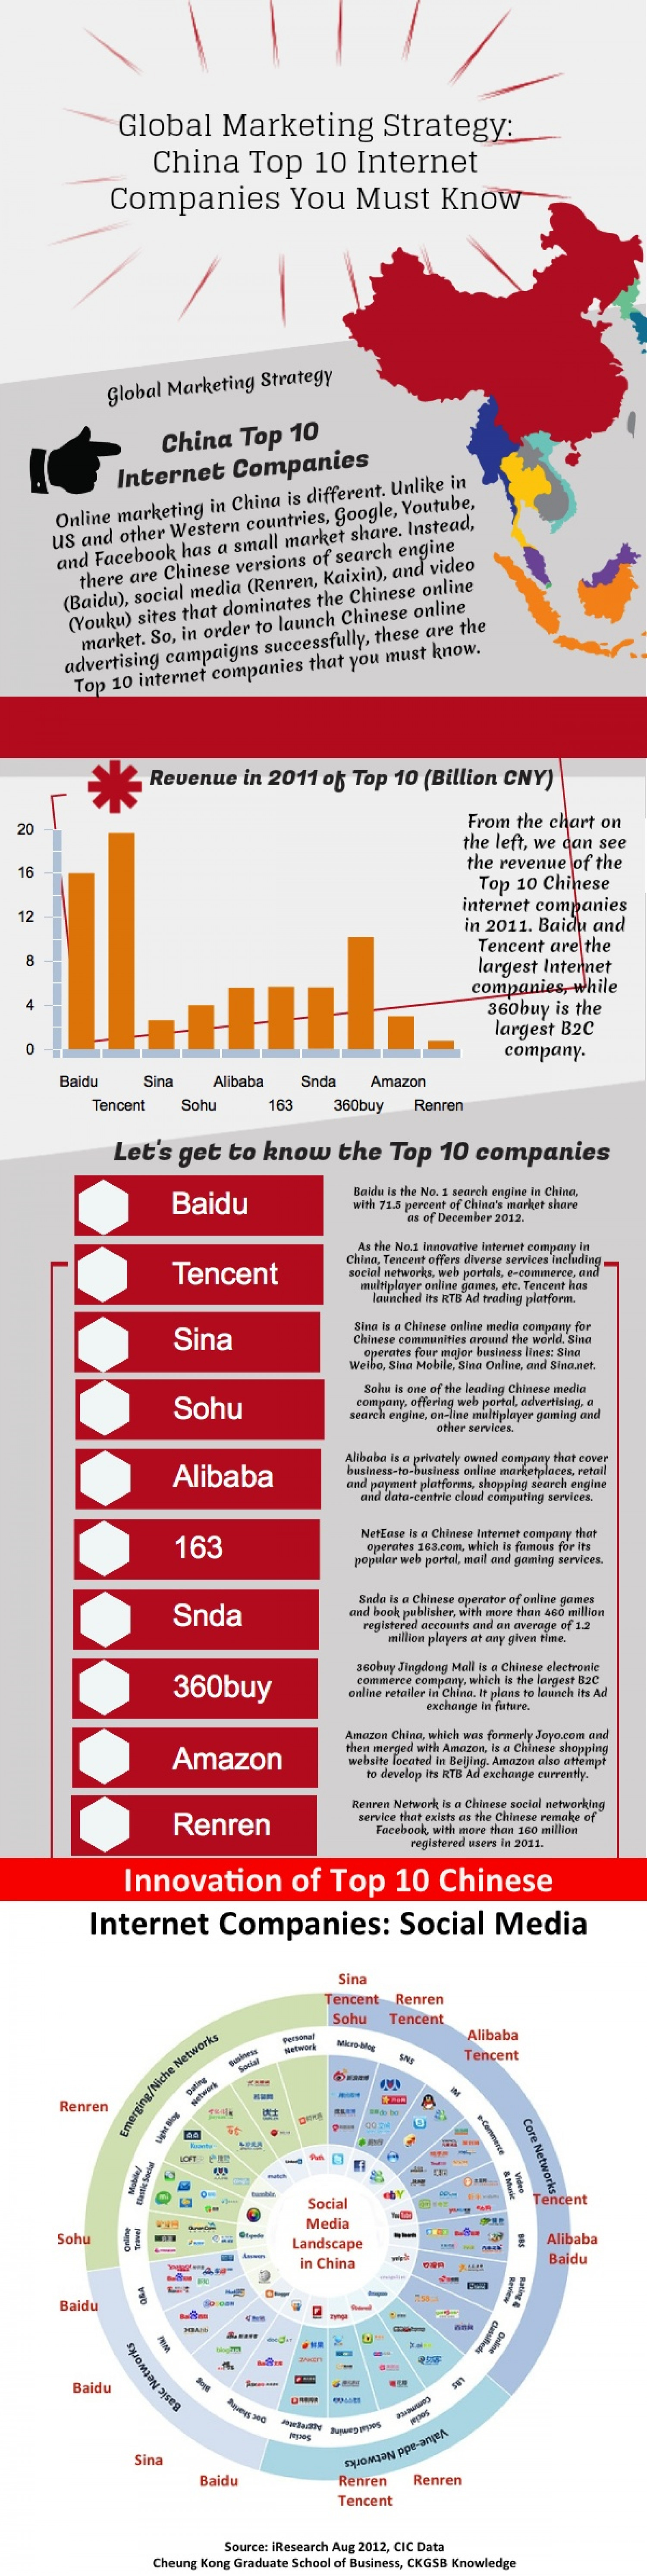 Global Marketing Strategy: China Top 10 Internet Companies You Must Know Infographic